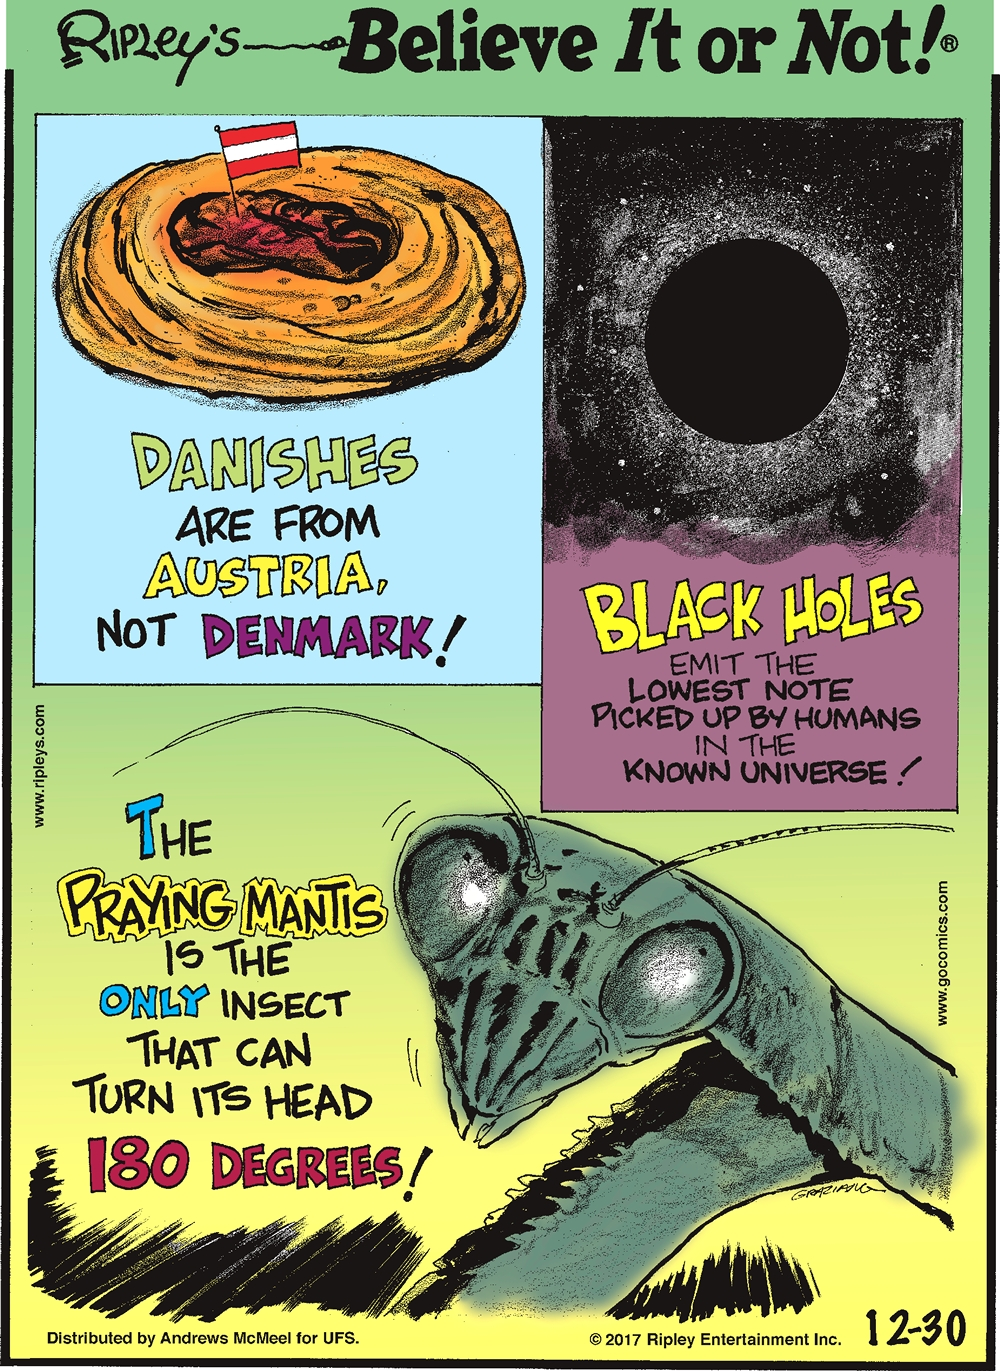 Danishes are from Austria, not Denmark!-------------------- Black holes emit the lowest note picked up by humans in the known universe!-------------------- The praying mantis is the only insect that can turn its head 180 degrees!